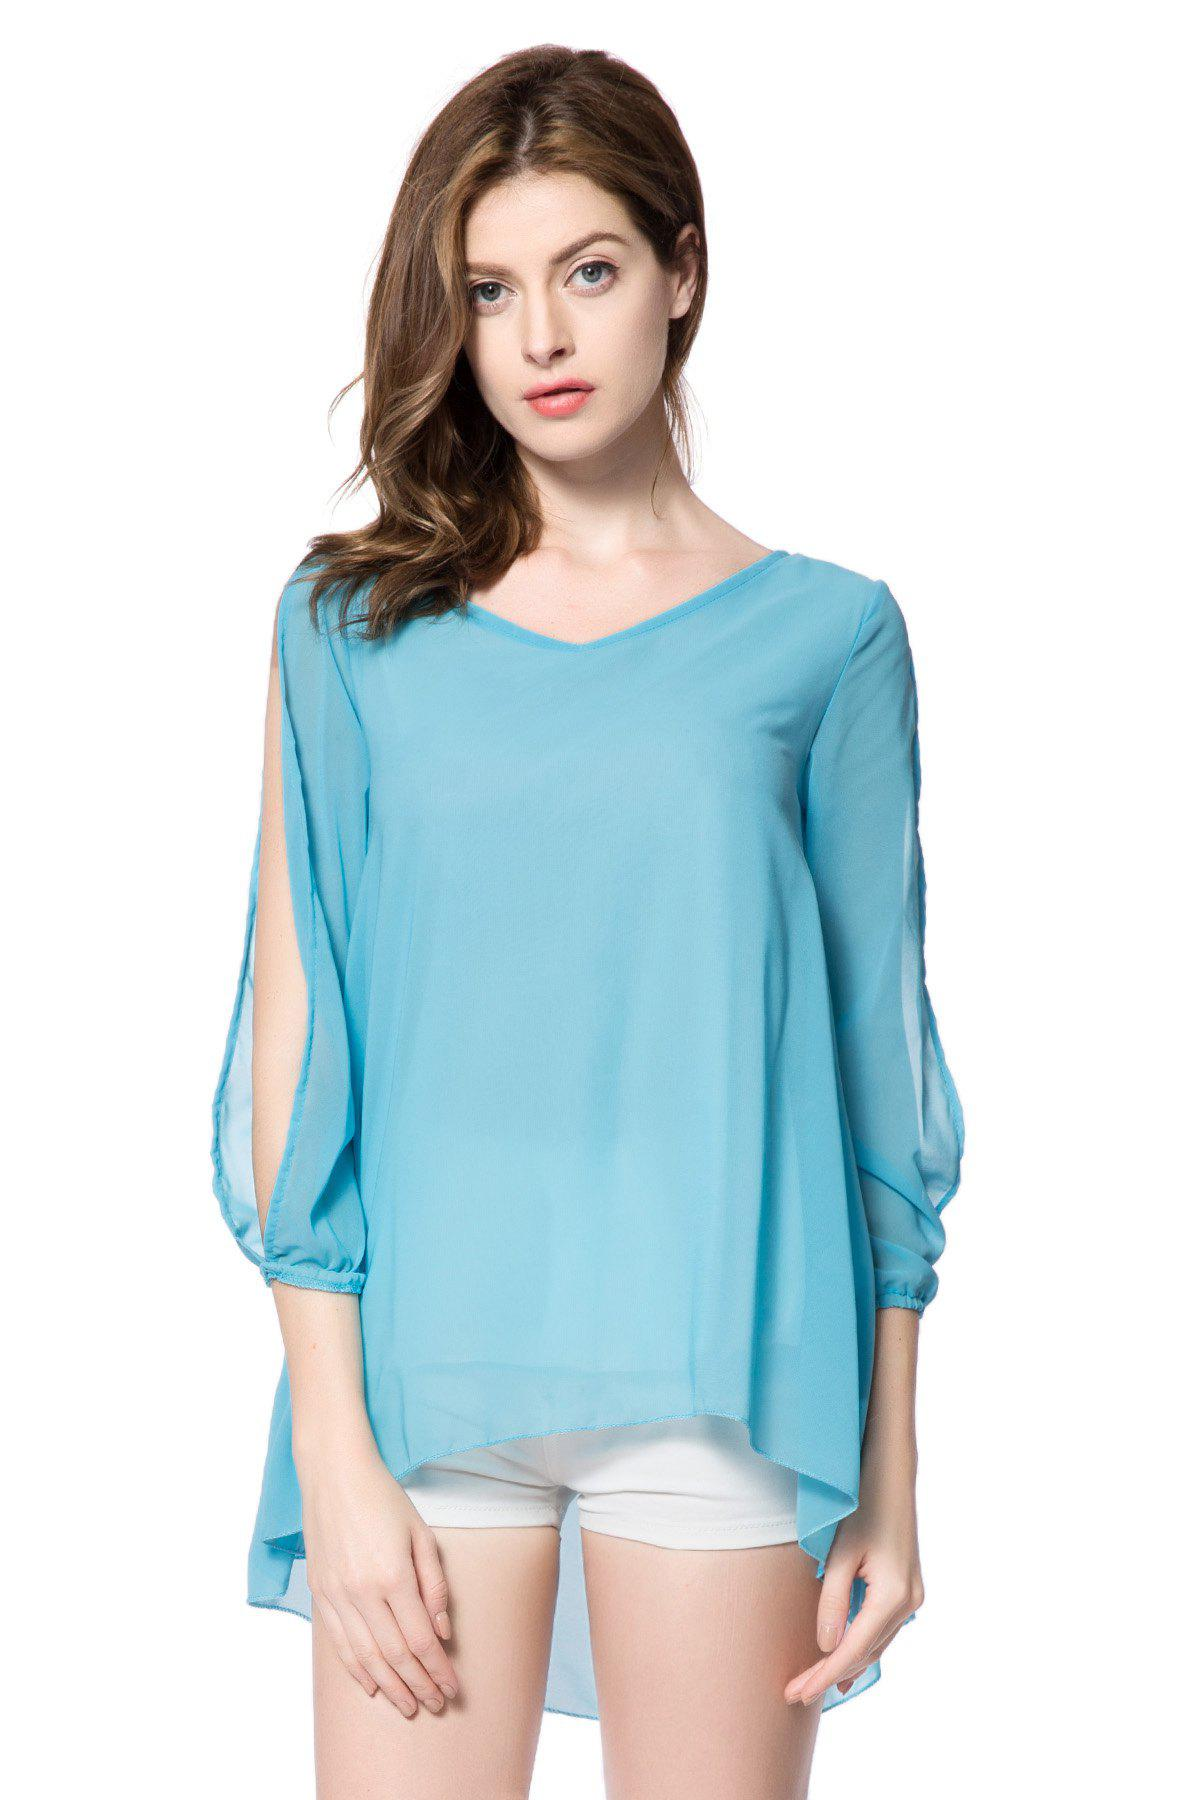 Stylish V-Neck Hollow Out 3/4 Sleeve Chiffon Dress For Women - LIGHT BLUE XL